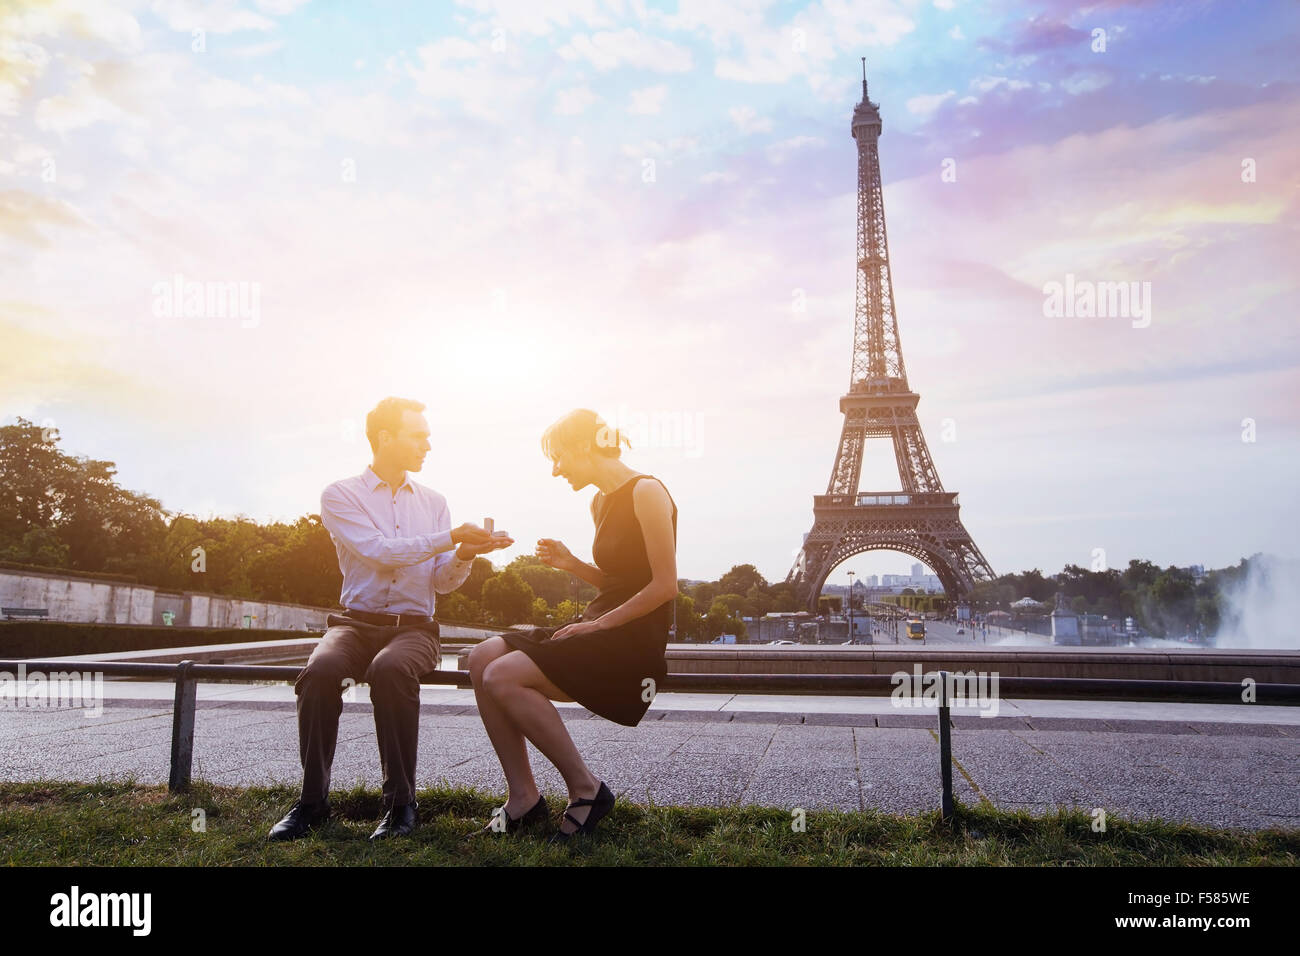 M'épouser, proposition à la Tour Eiffel à Paris, de belles silhouettes de young caucasian couple Photo Stock